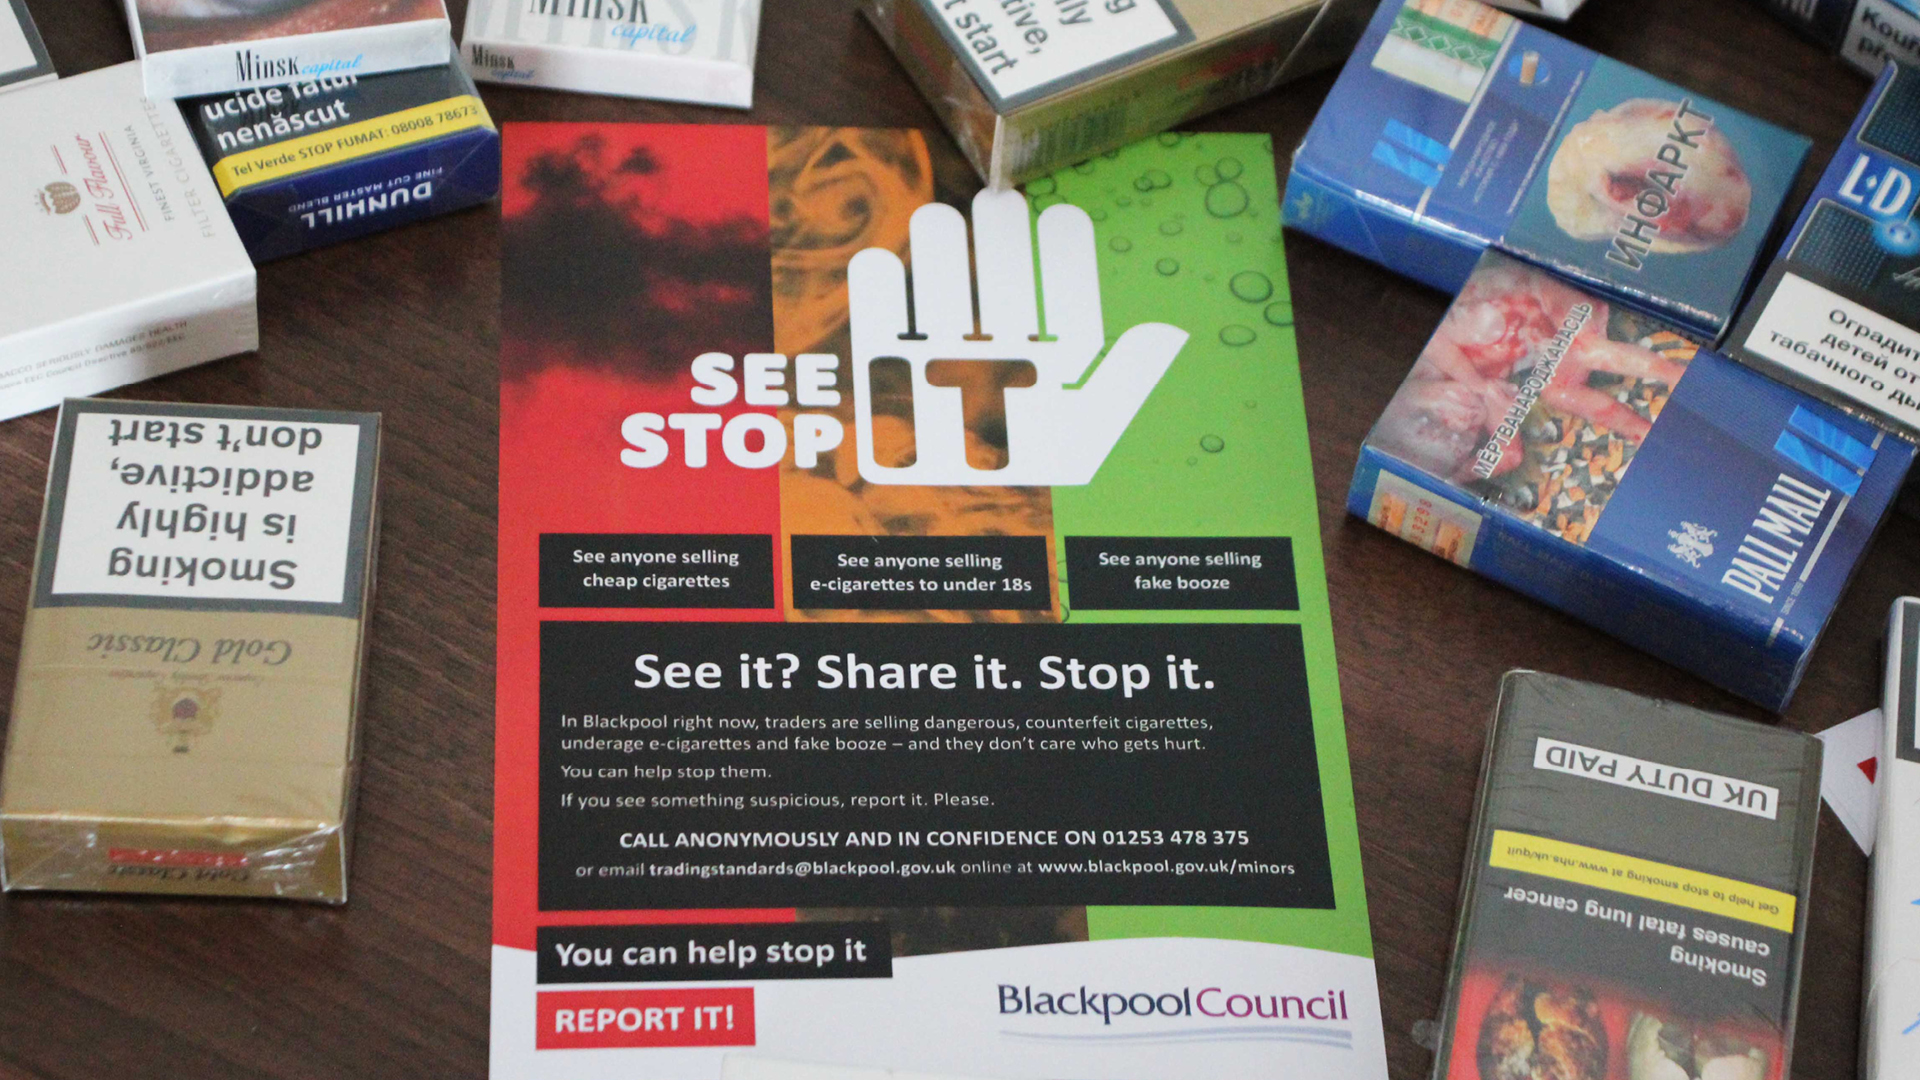 See it Stop It Branding Campaign – Blackpool Council